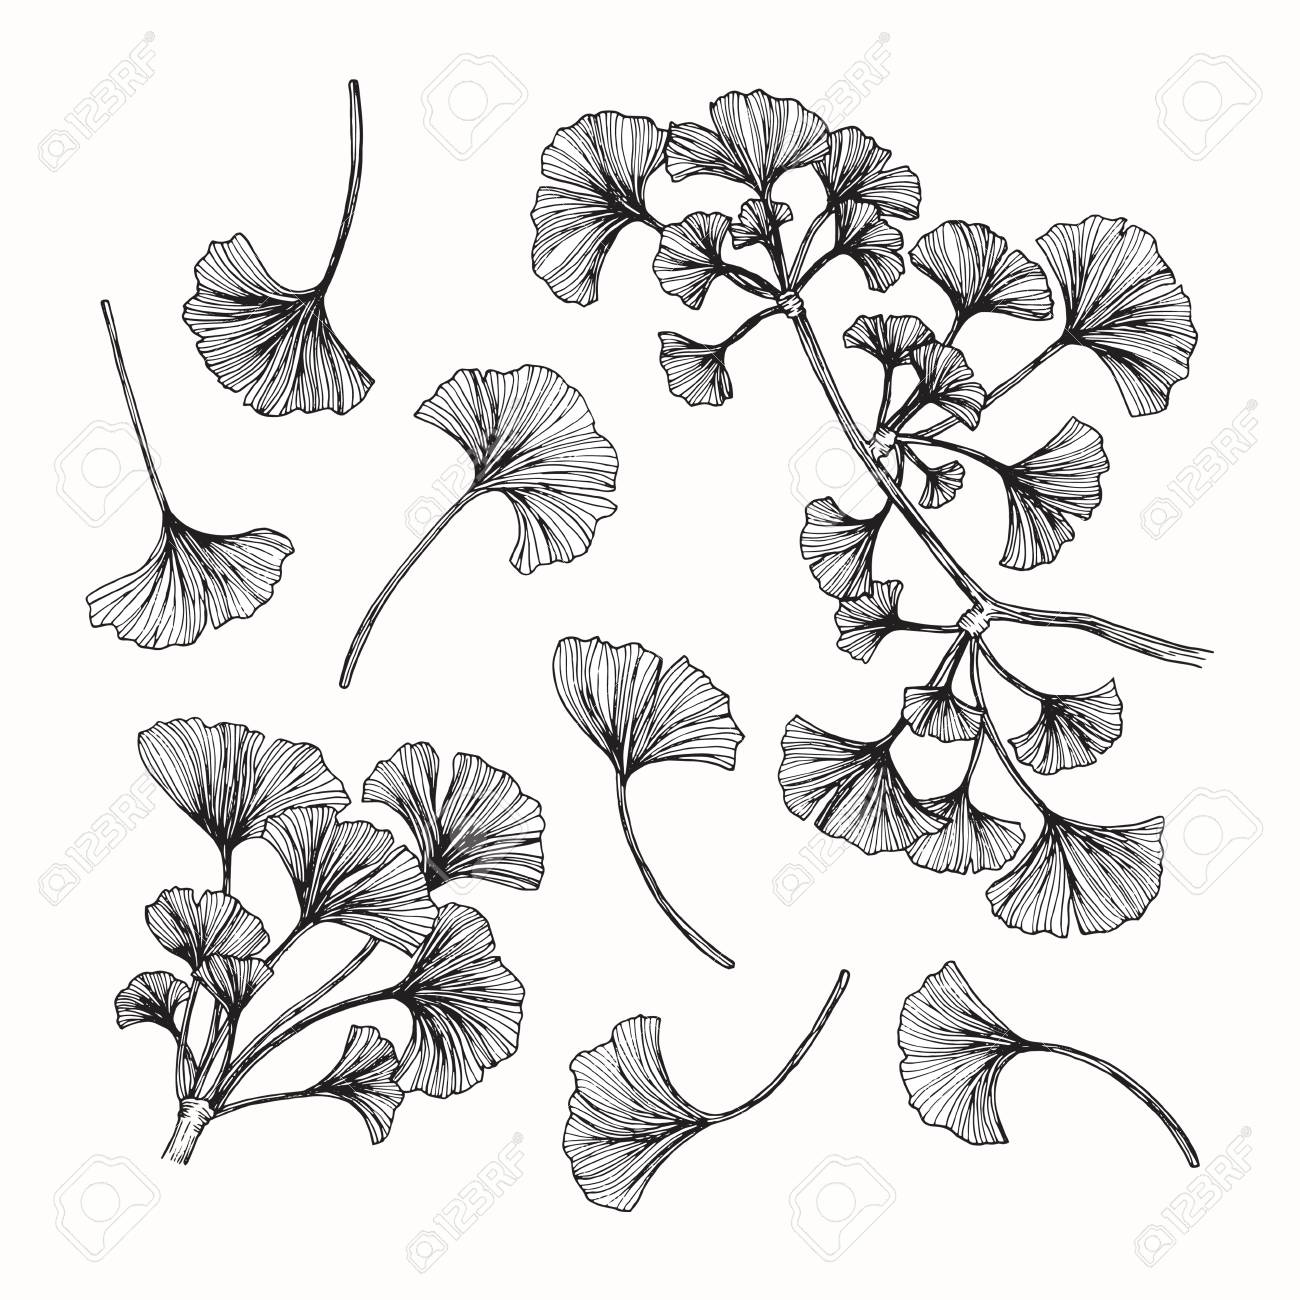 Ginkgo leaf drawing and sketch with black and white line art stock vector